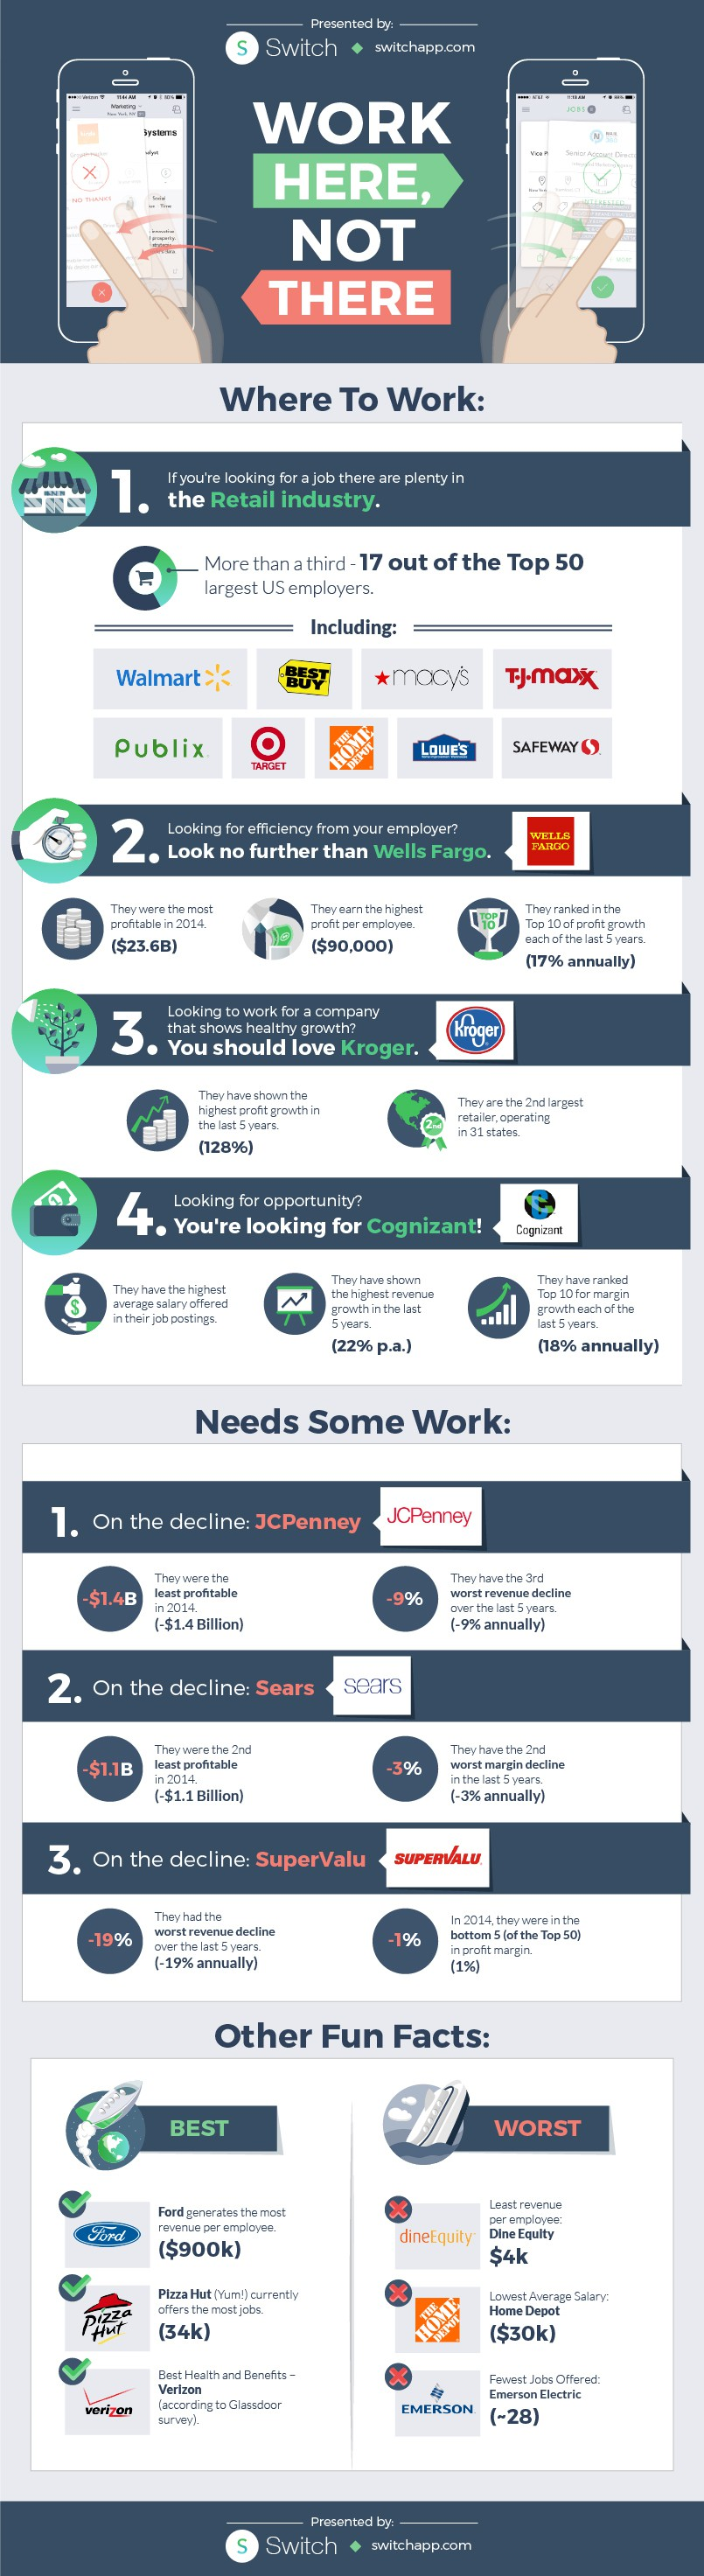 """Infographic - """"Best & Worst Companies To Work For"""""""